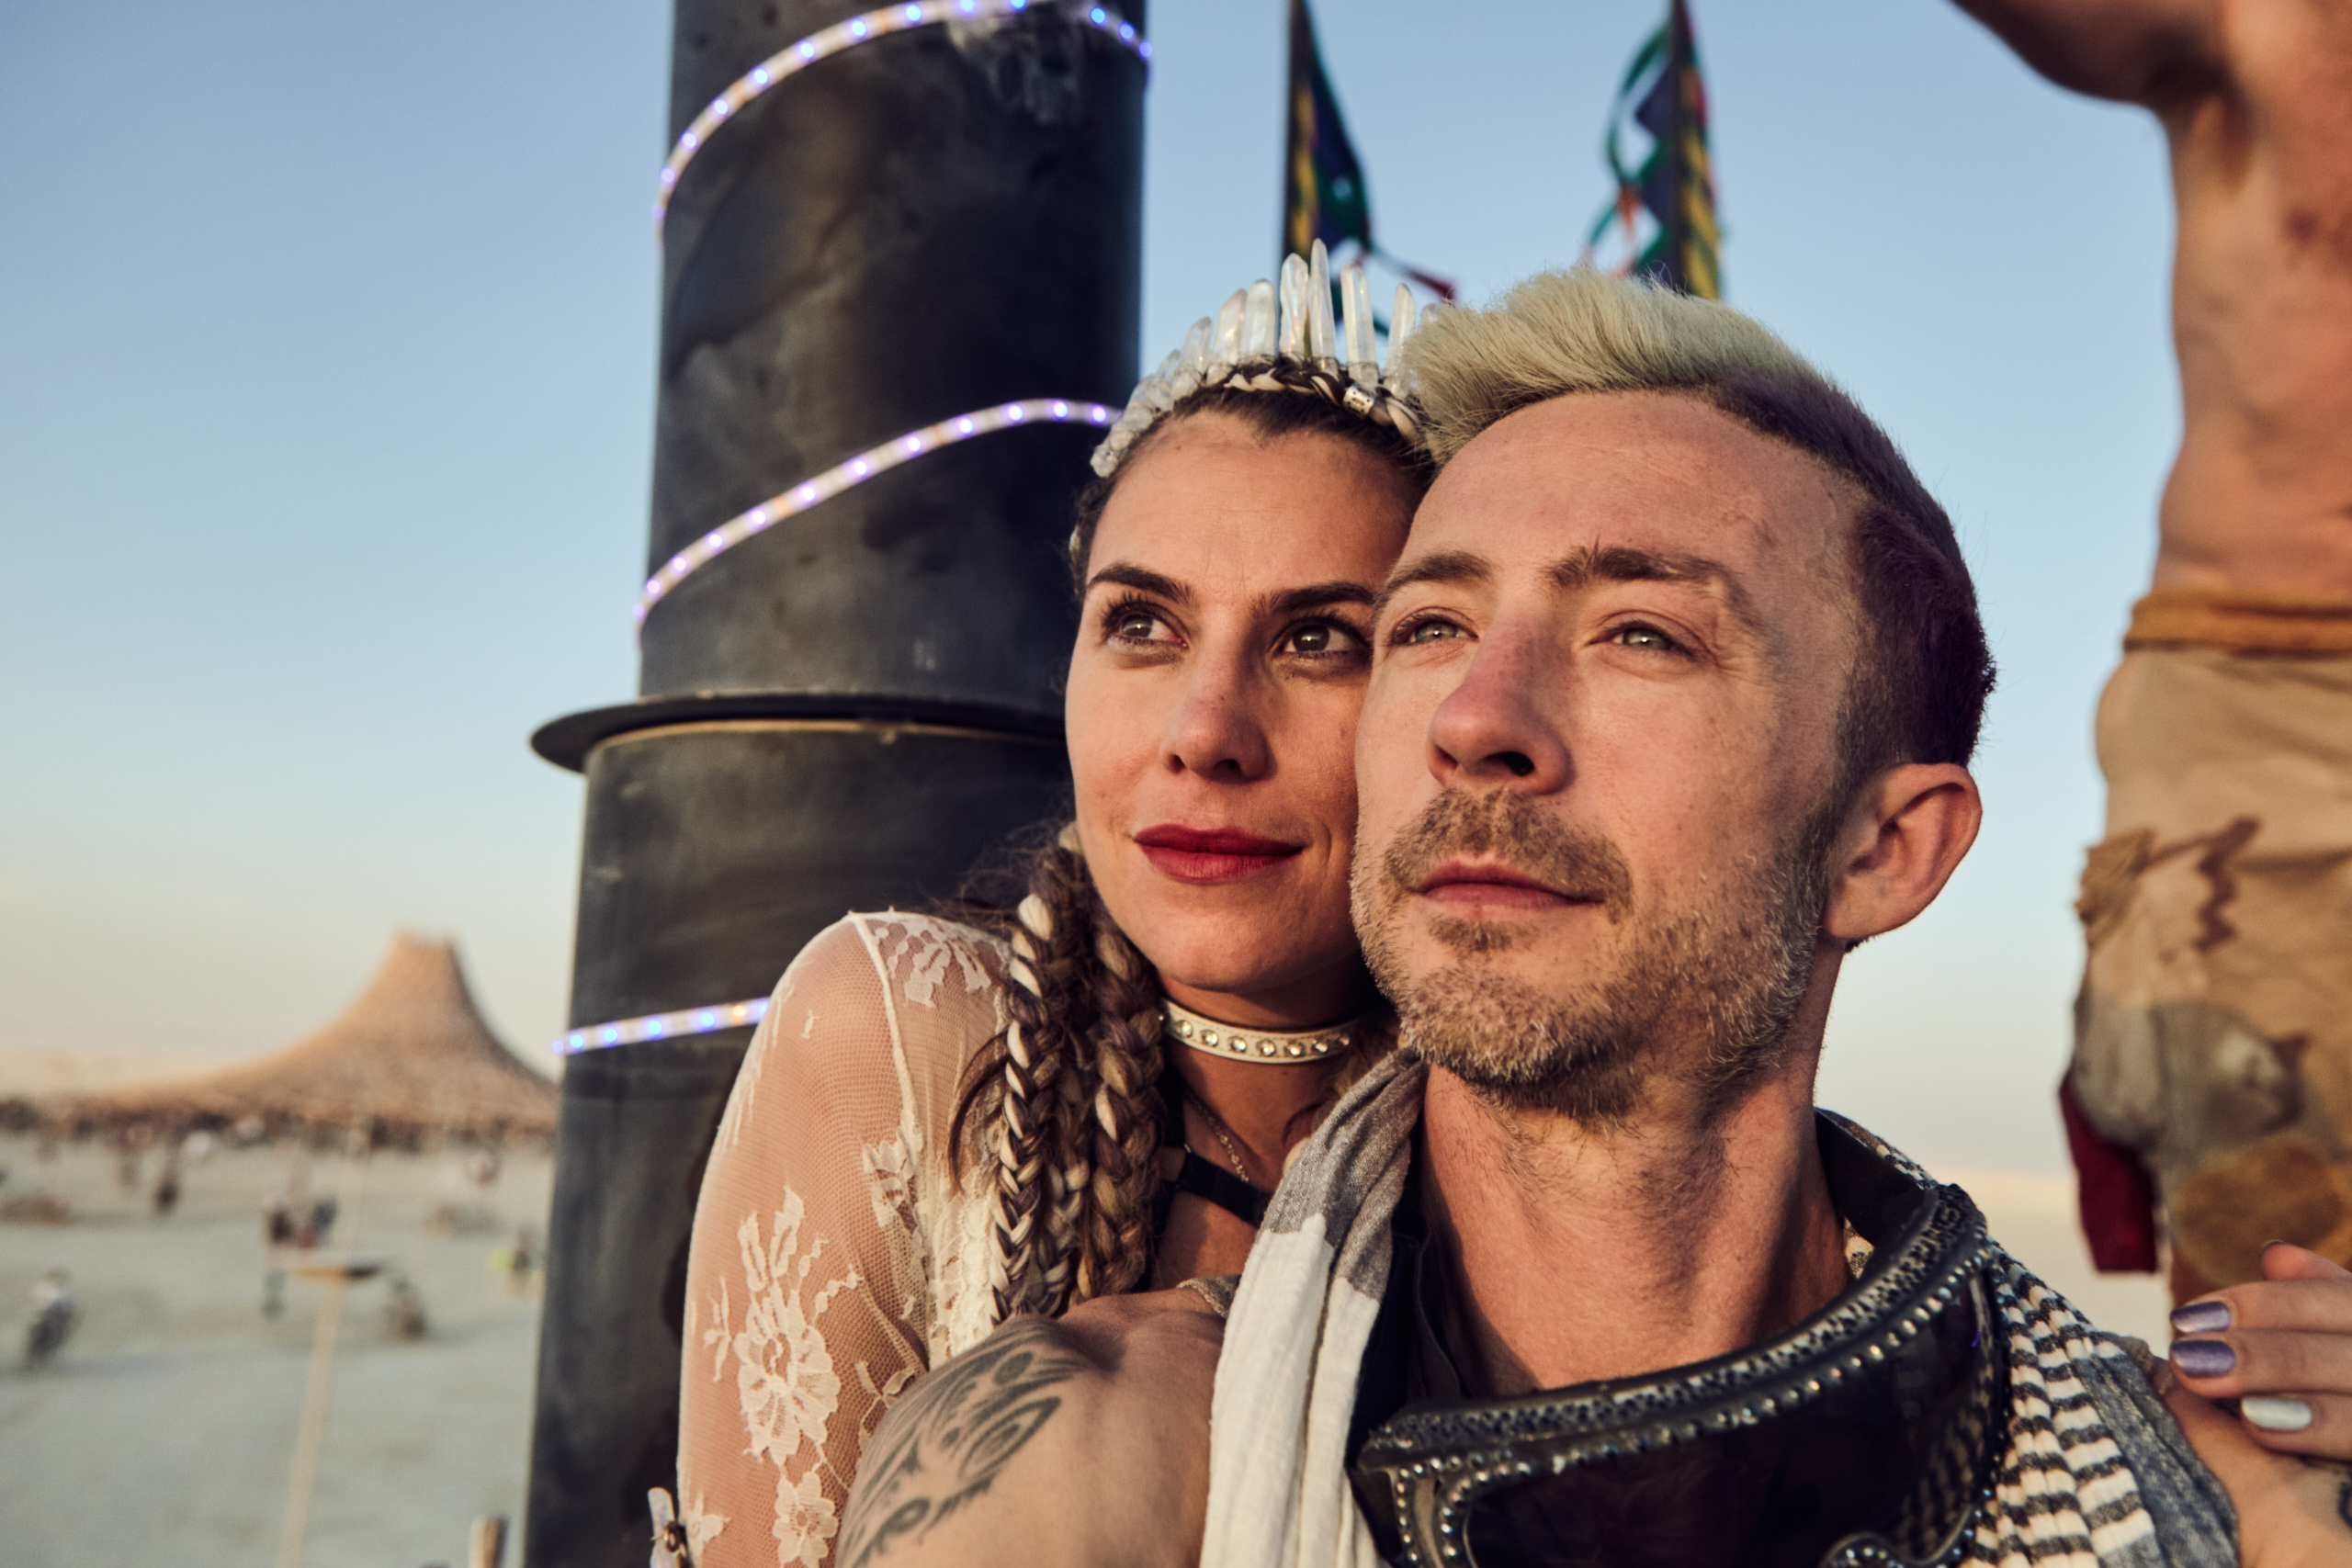 BURNING_MAN_2018_0857